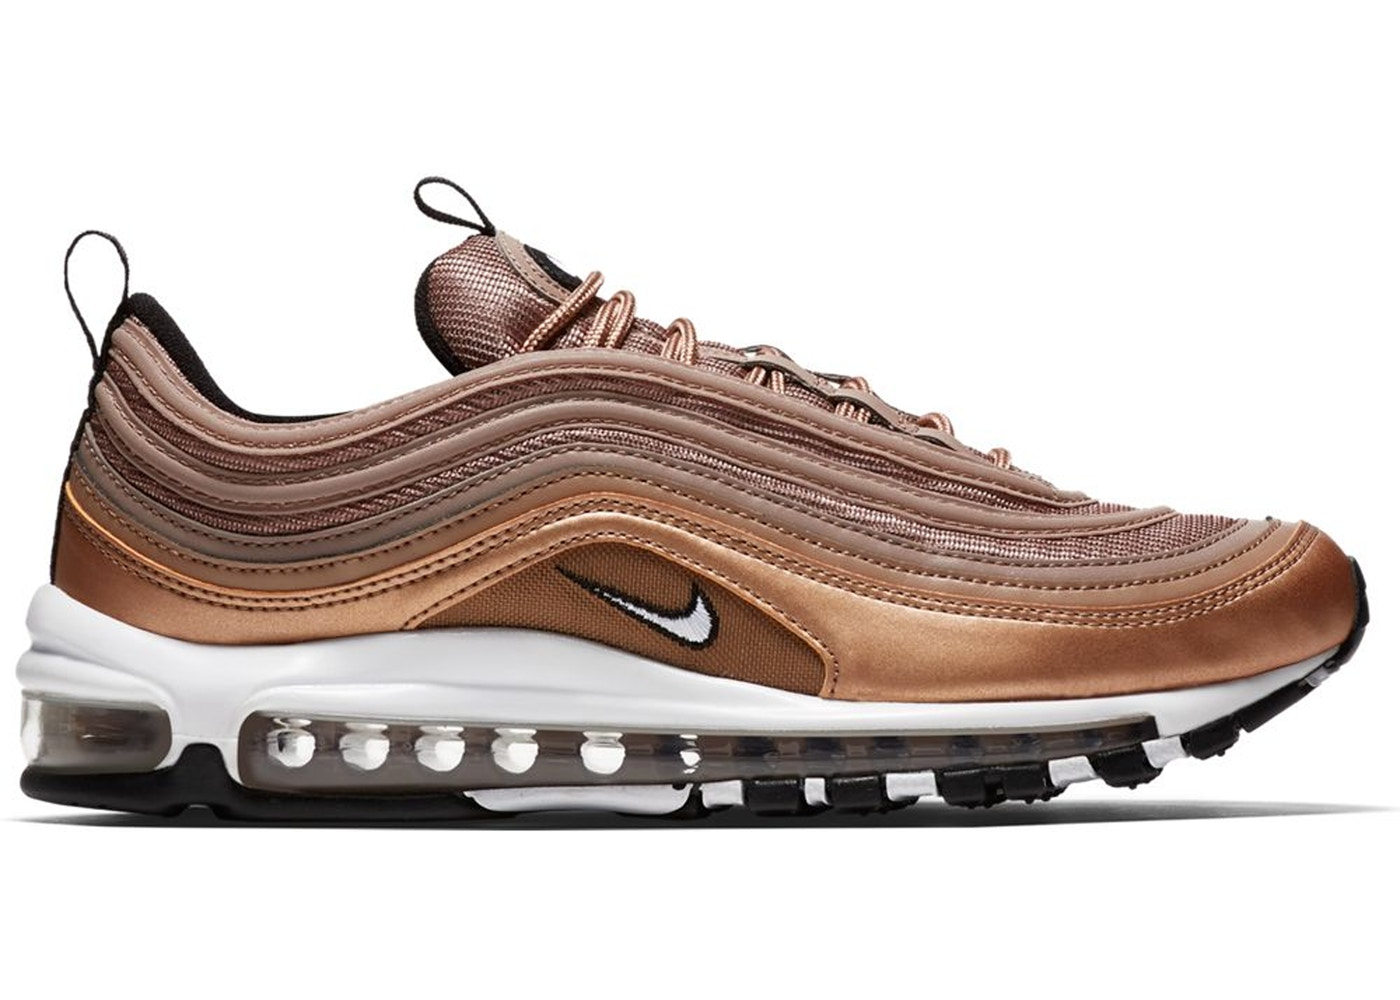 new product 4cec9 1bbf3 Air Max 97 Bronze